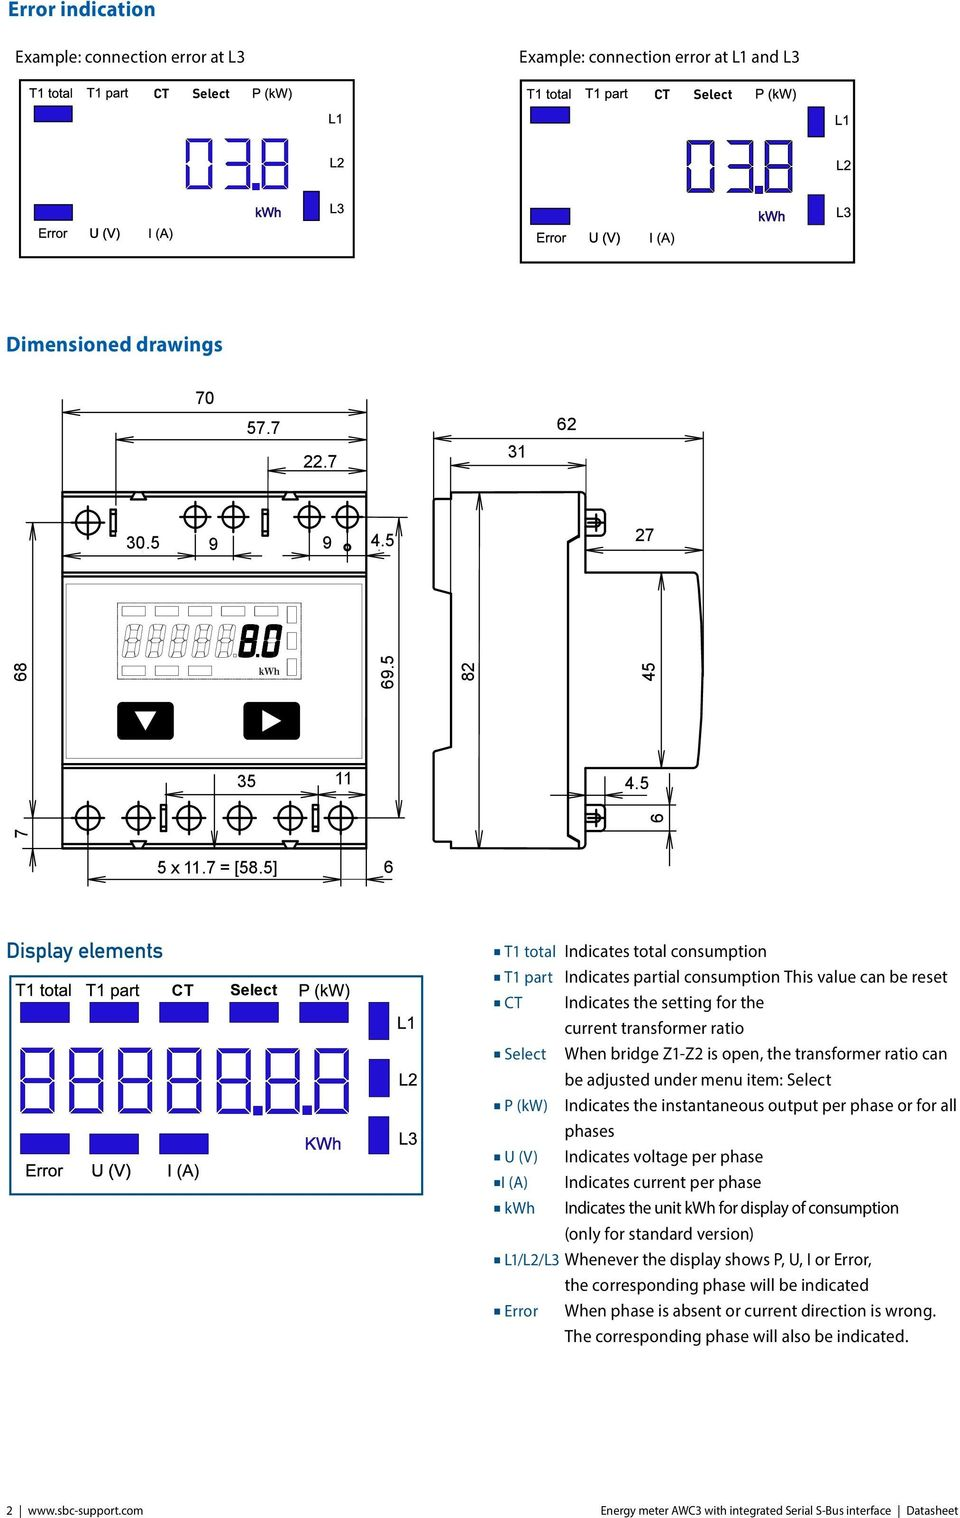 5] 6 Display elements T1 total Indicates total consumption T1 part Indicates partial consumption This value can be reset Indicates the setting for the current transformer ratio When bridge Z1-Z2 is